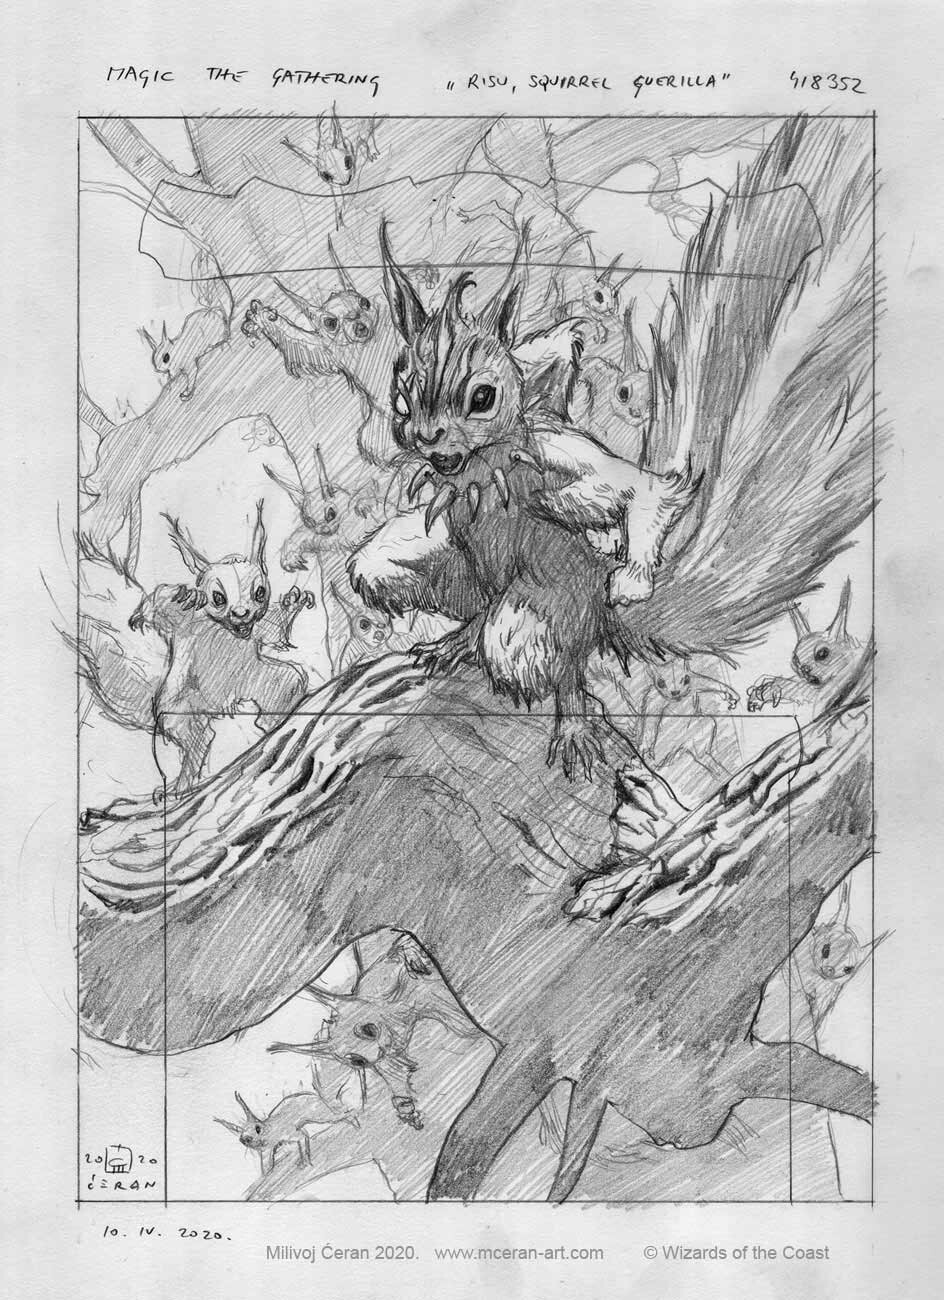 """""""Chatterfang, Squirrel General"""" sketch, Milivoj Ćeran 2020. - a-4, size 21 x 29,7 cm (cca 12x8 inches) - pencil on paper - © Wizards of the Coast - AD Cynthia Sheppard - """"Modern Horizons 2"""" set - Legendary Creature, Mythic card"""